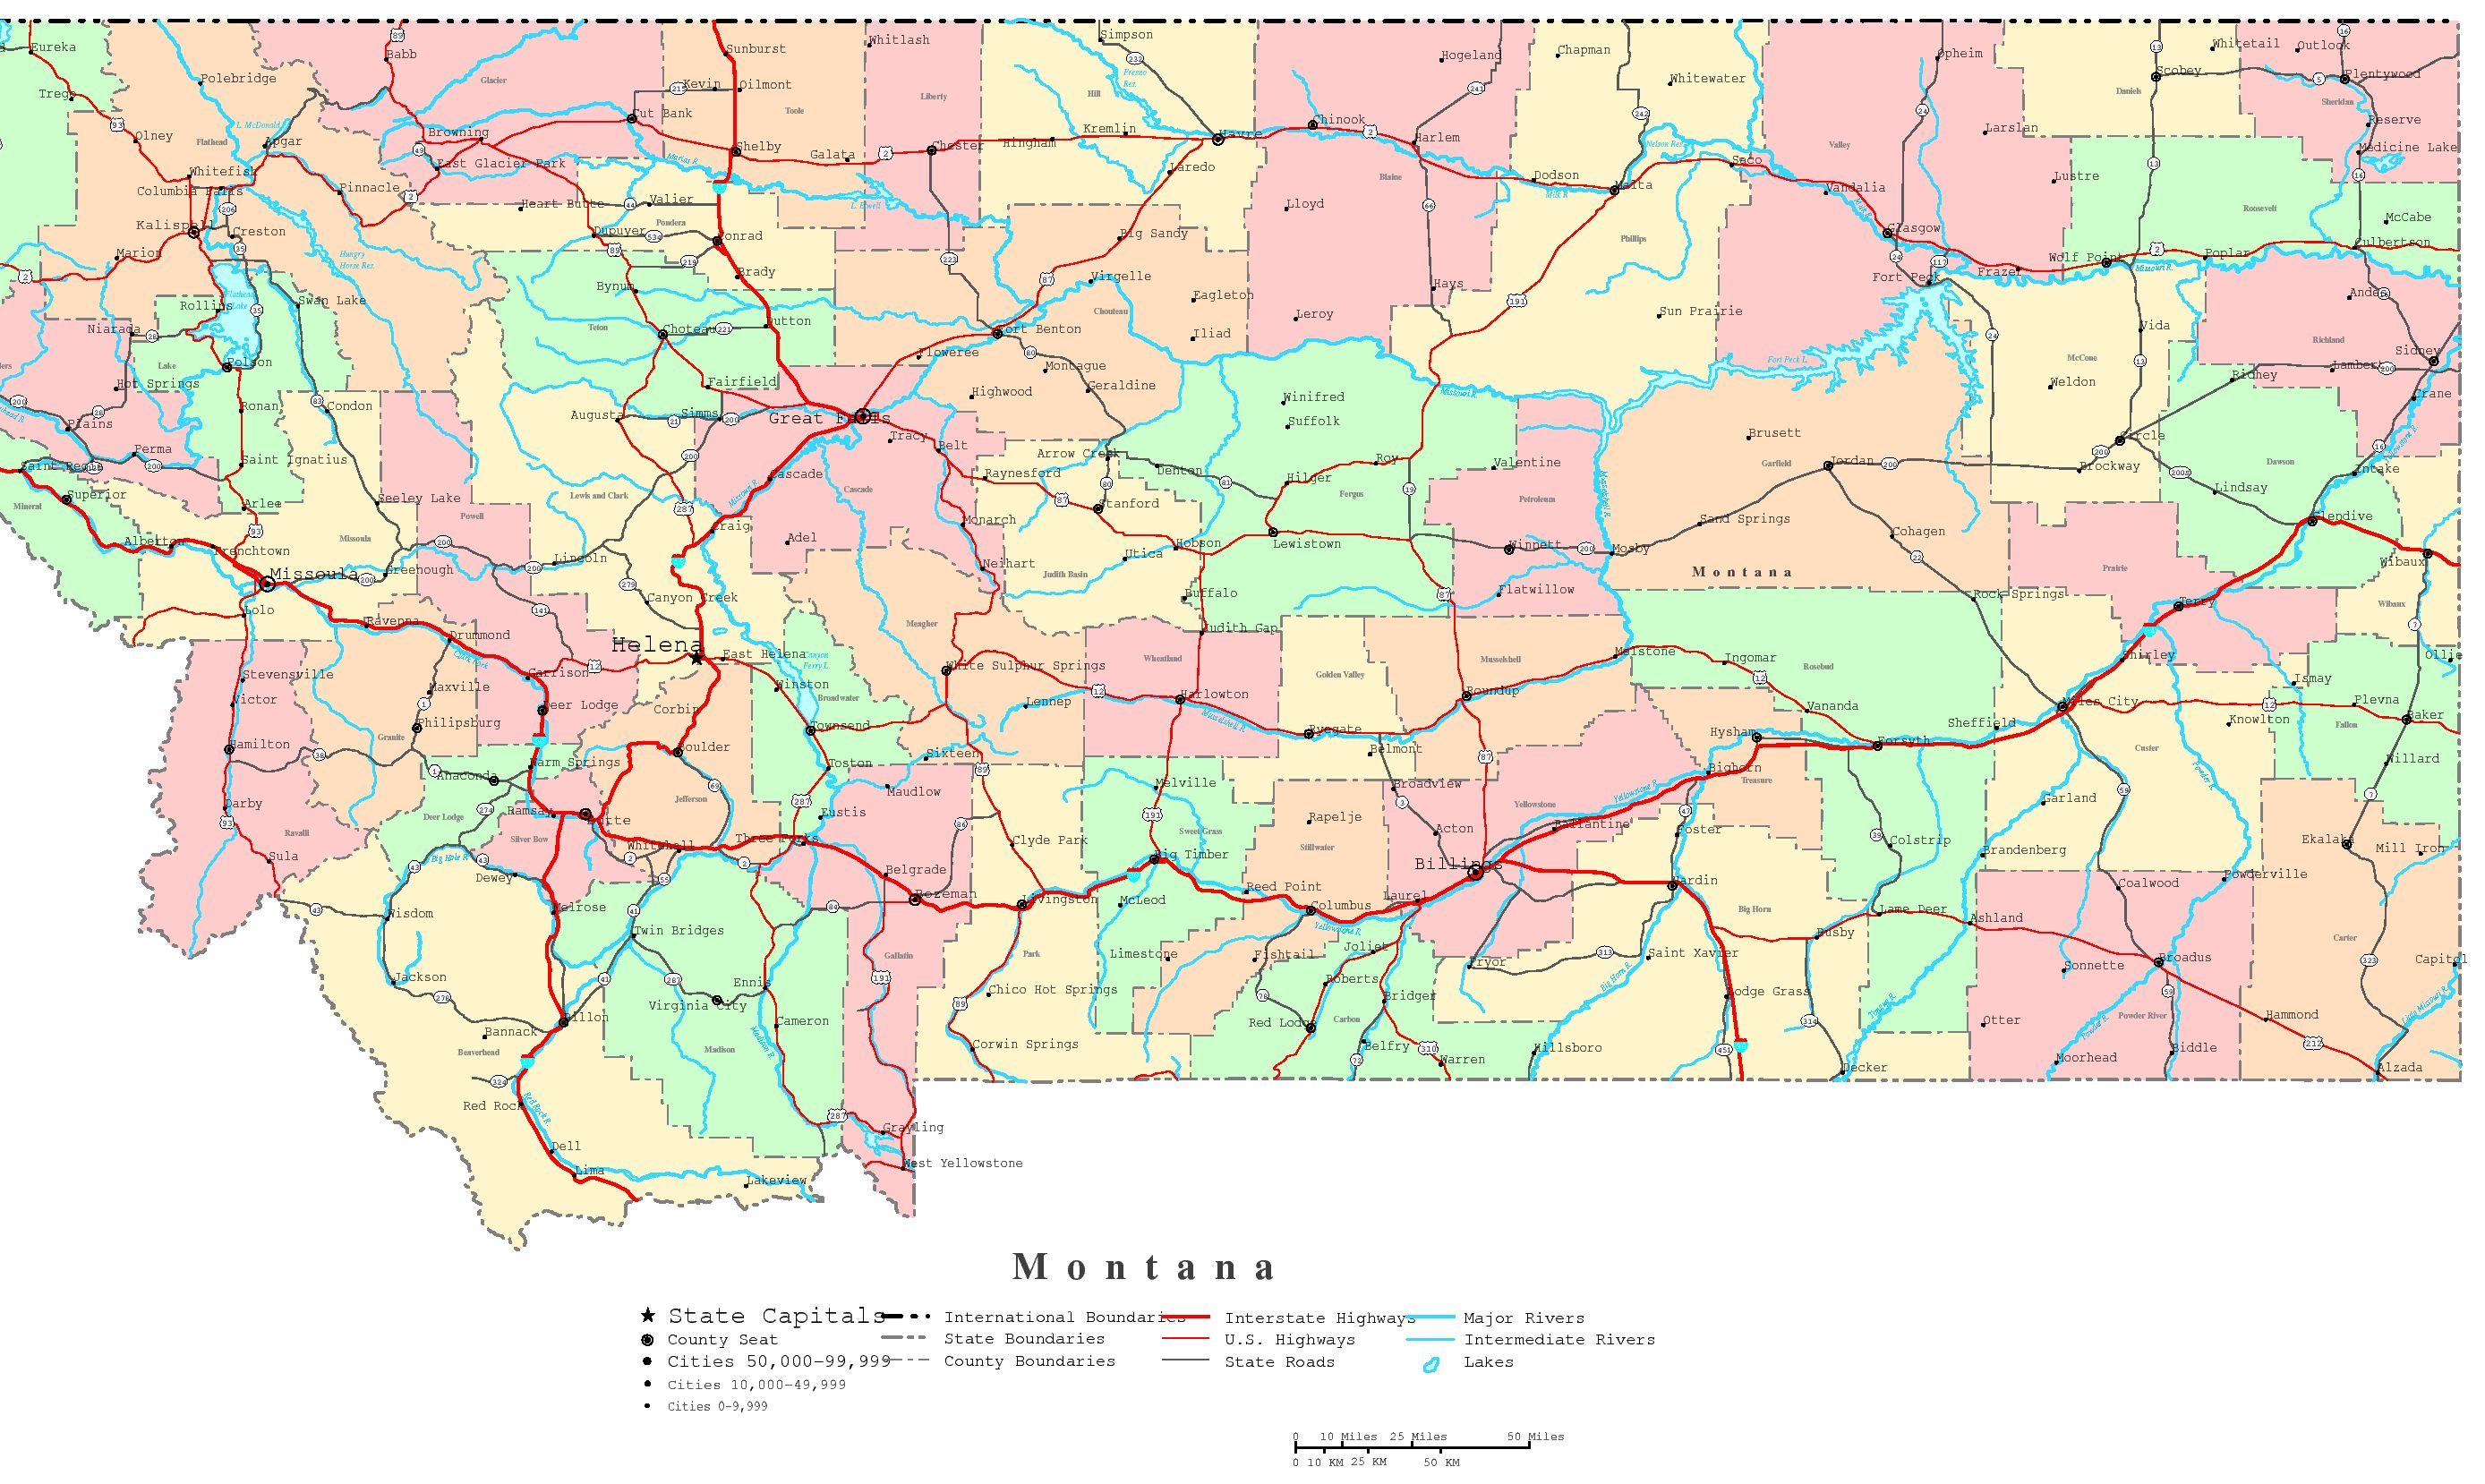 Montana Printable Map - Montana cities map